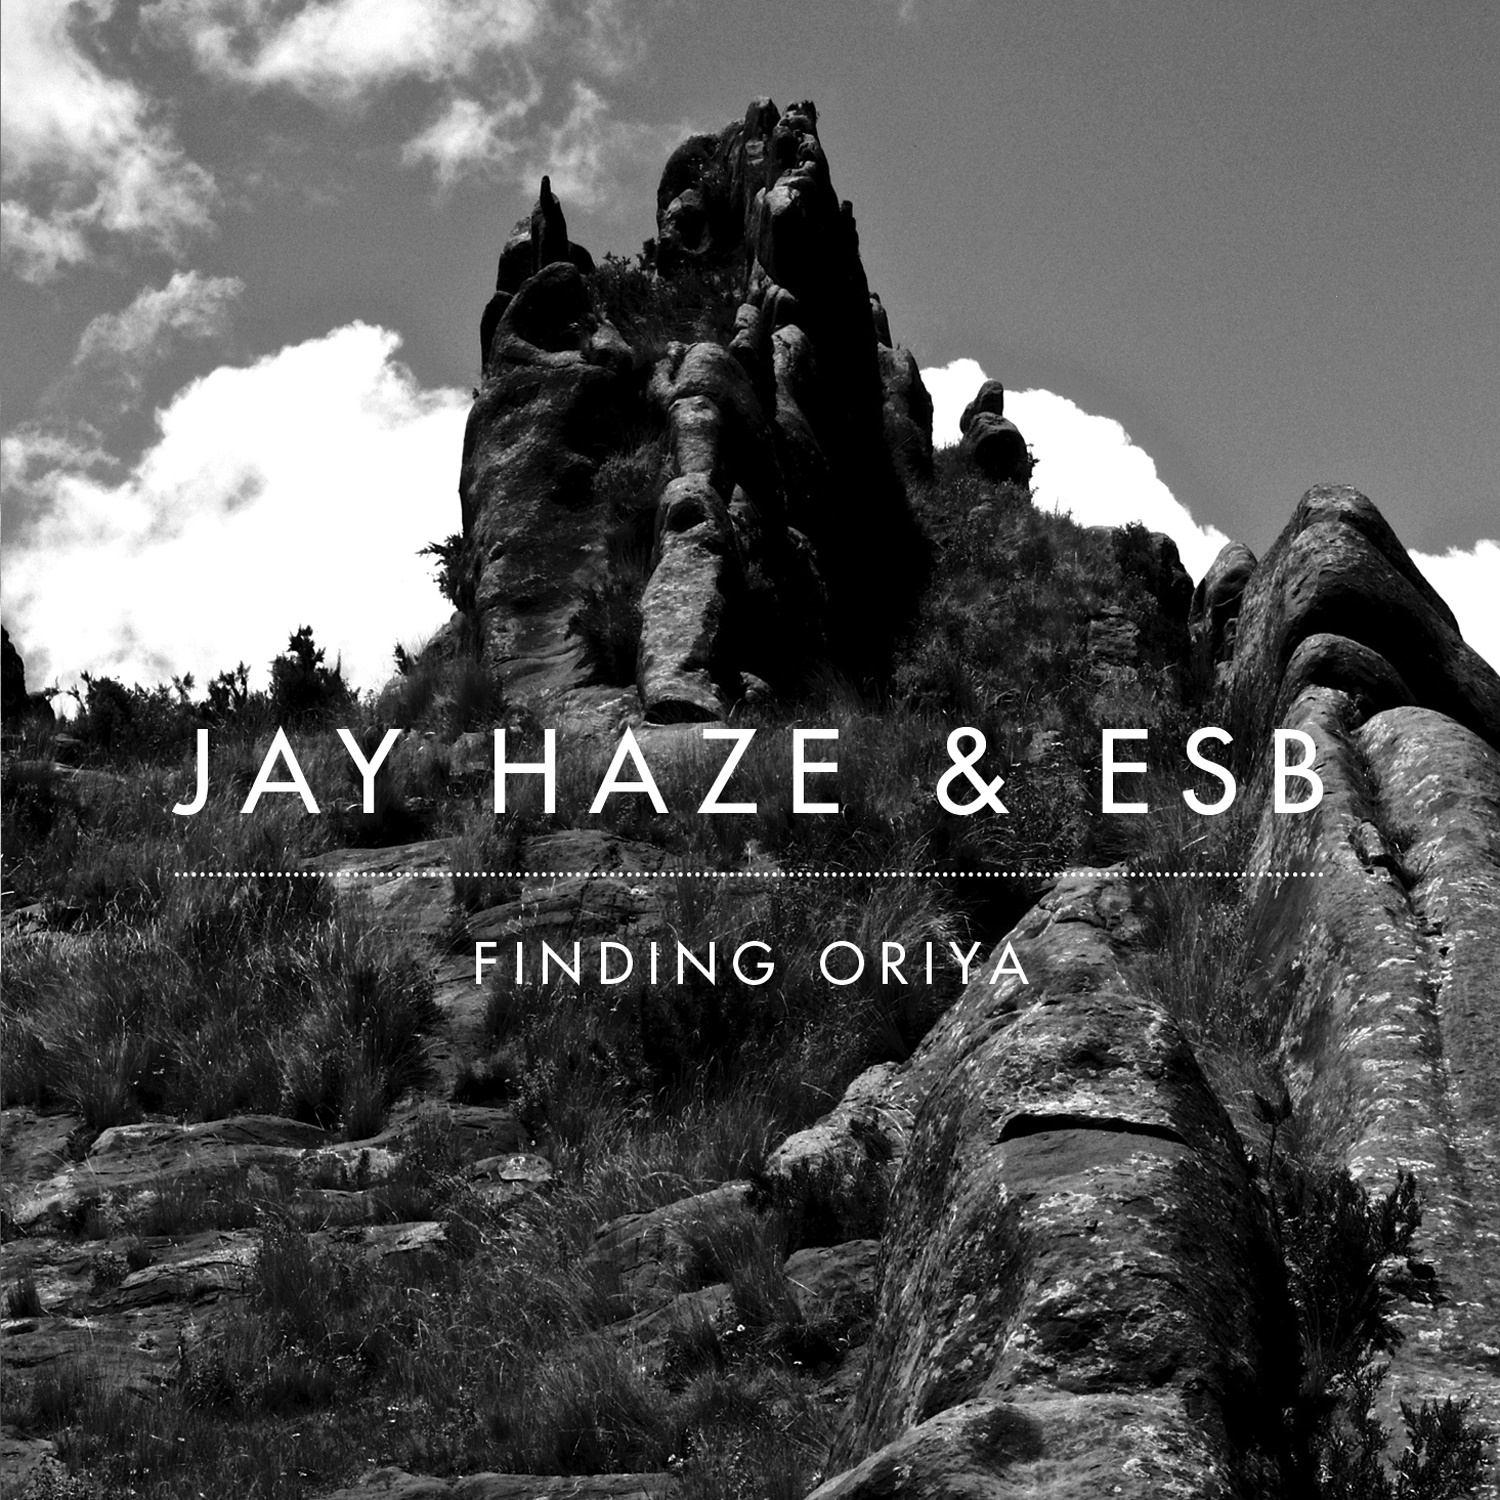 Jay Haze & ESB/FINDING ORIYA CD